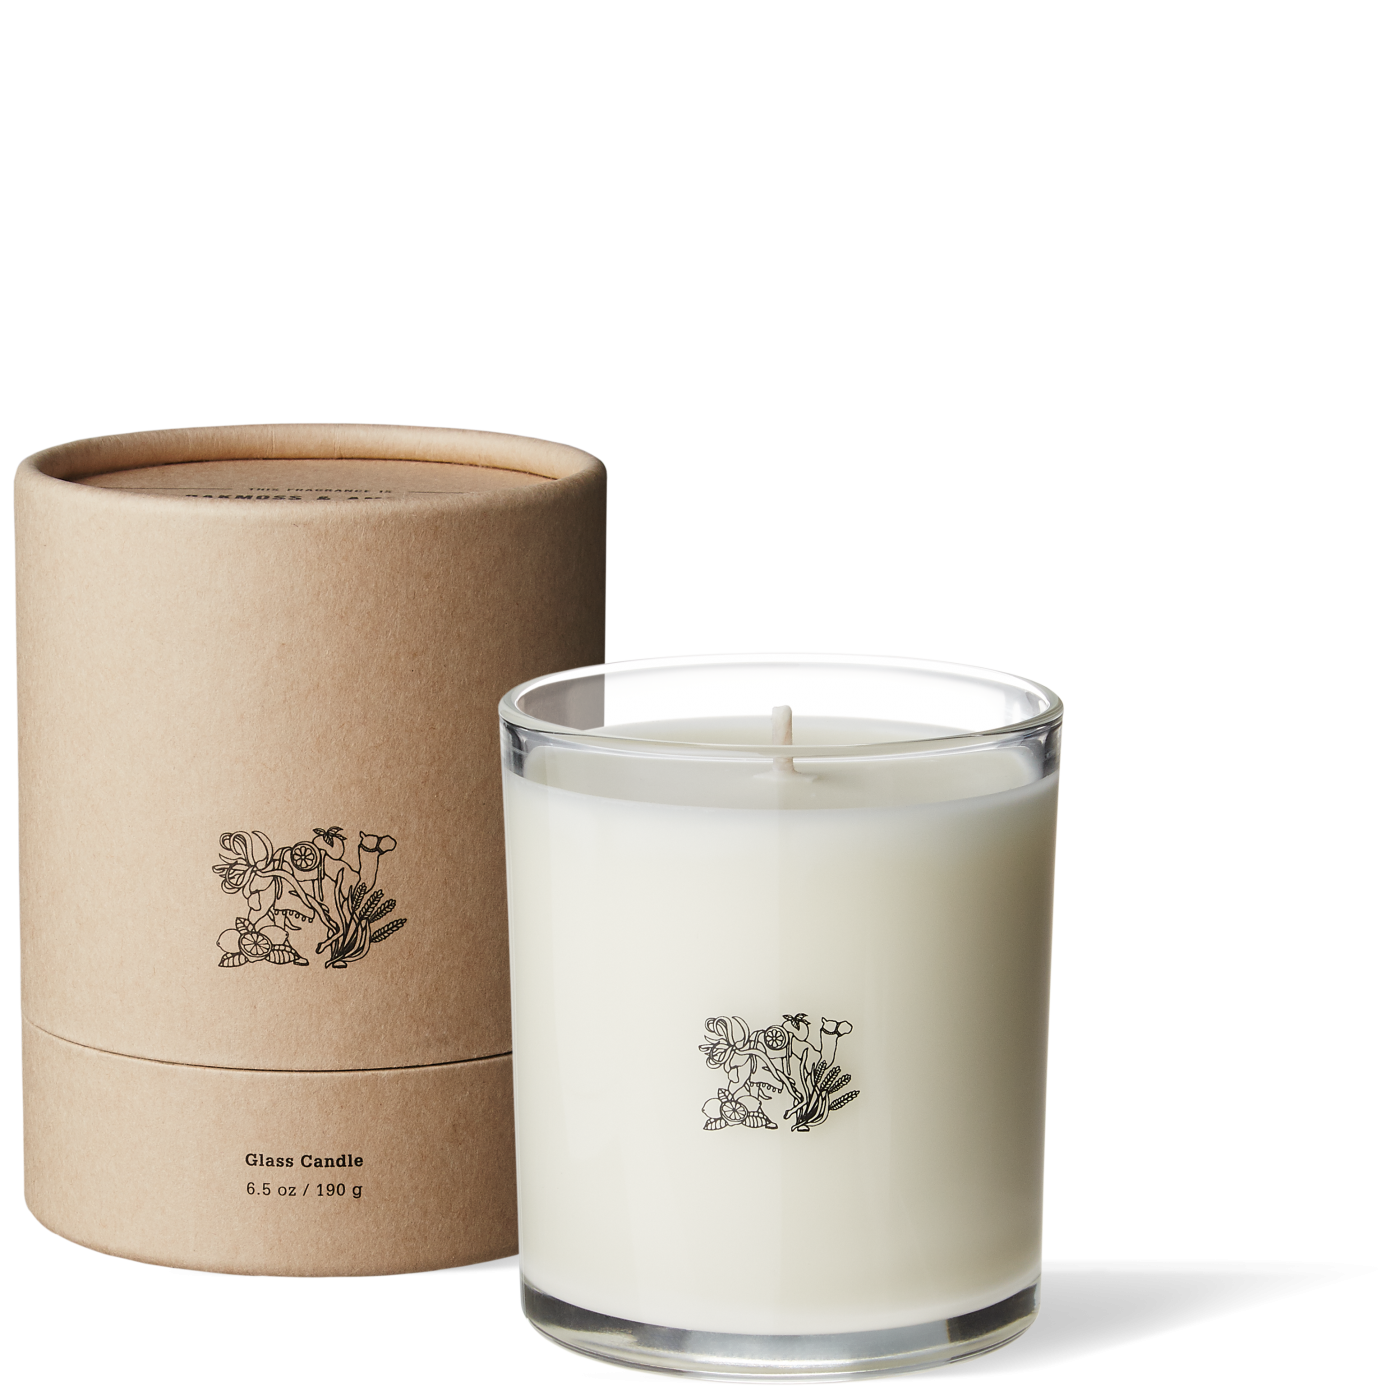 APOTHEKE FRAGRANCE アポテーケ フレグランス  / GLASS CANDLE